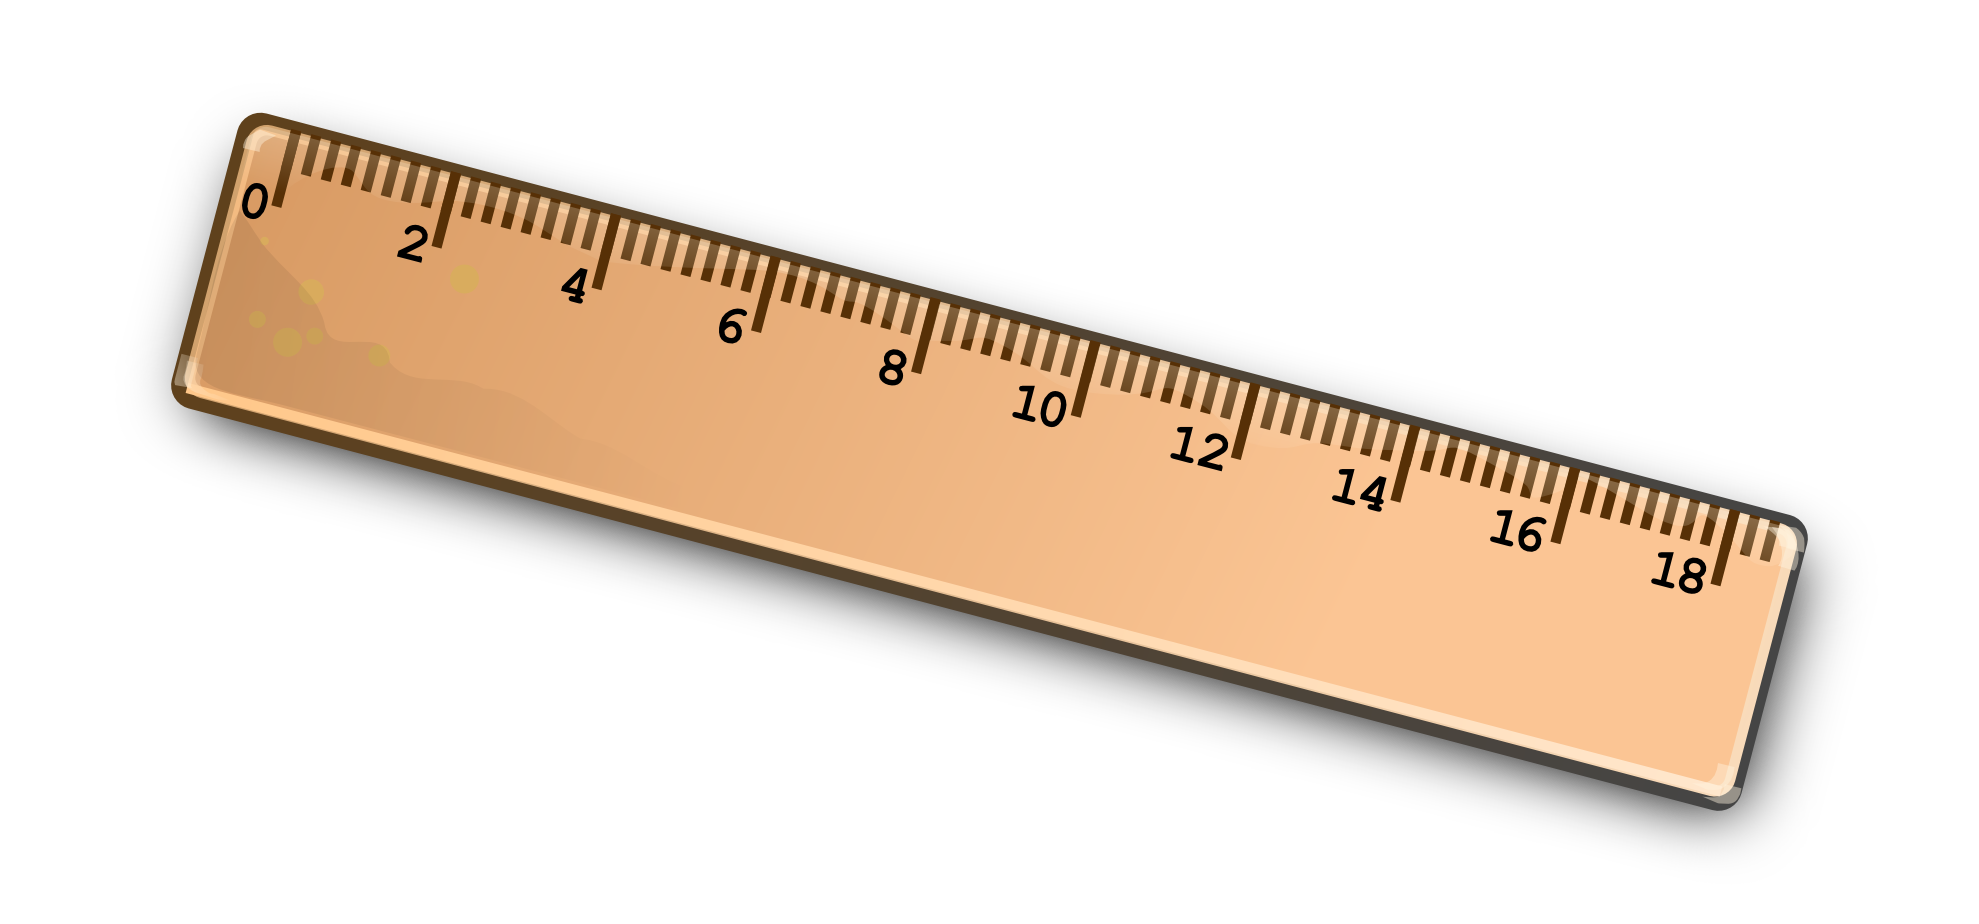 Free Meter Stick Png, Download Free Clip Art, Free Clip Art on.